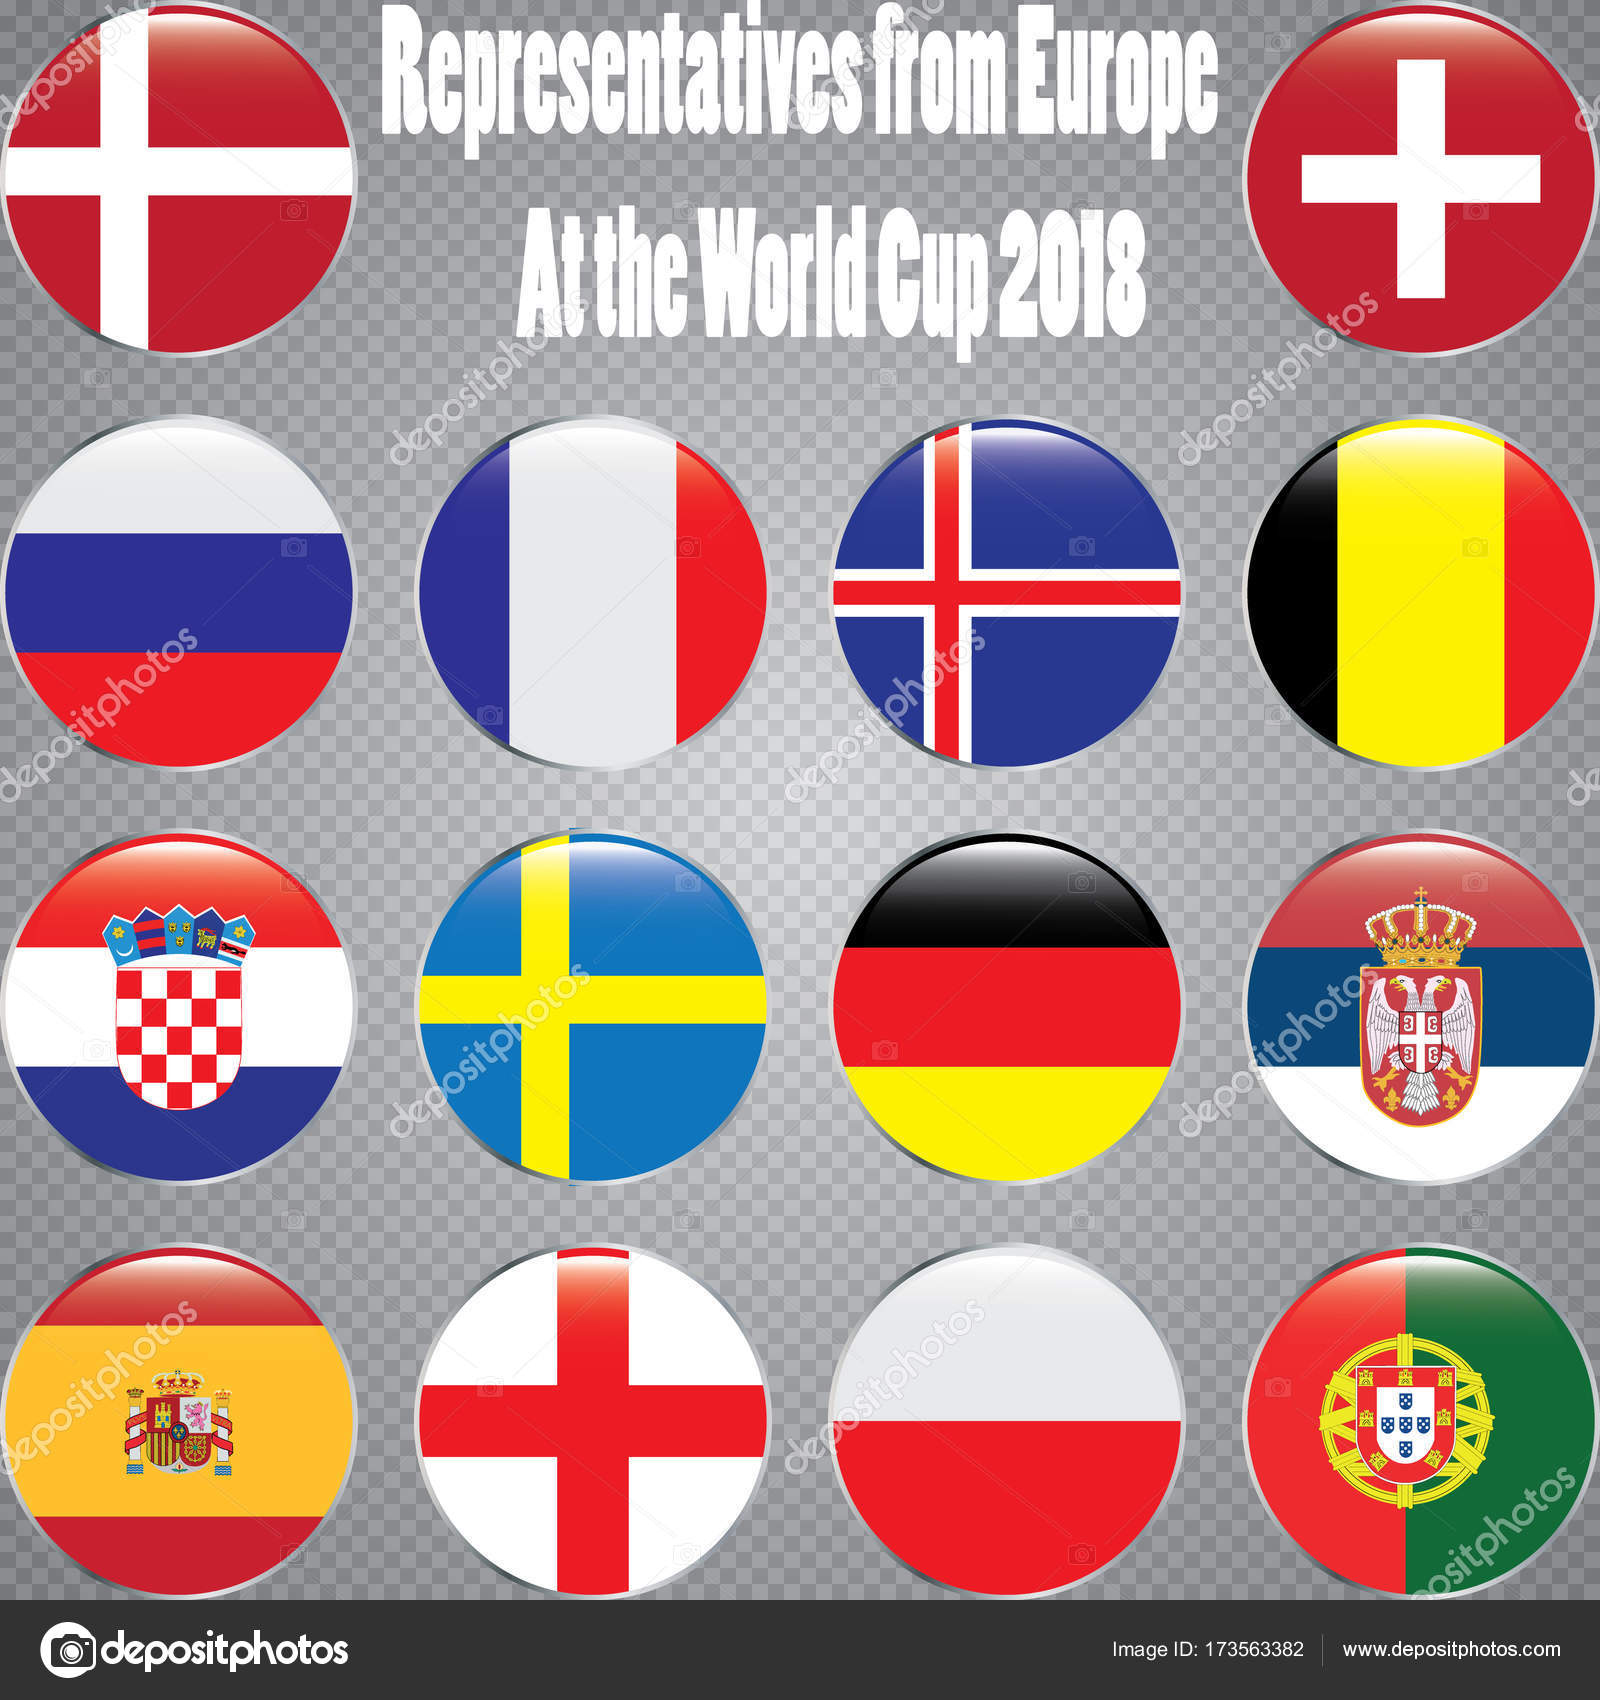 Popular Europe World Cup 2018 - depositphotos_173563382-stock-illustration-representatives-of-europe-for-the  Picture_8583 .jpg